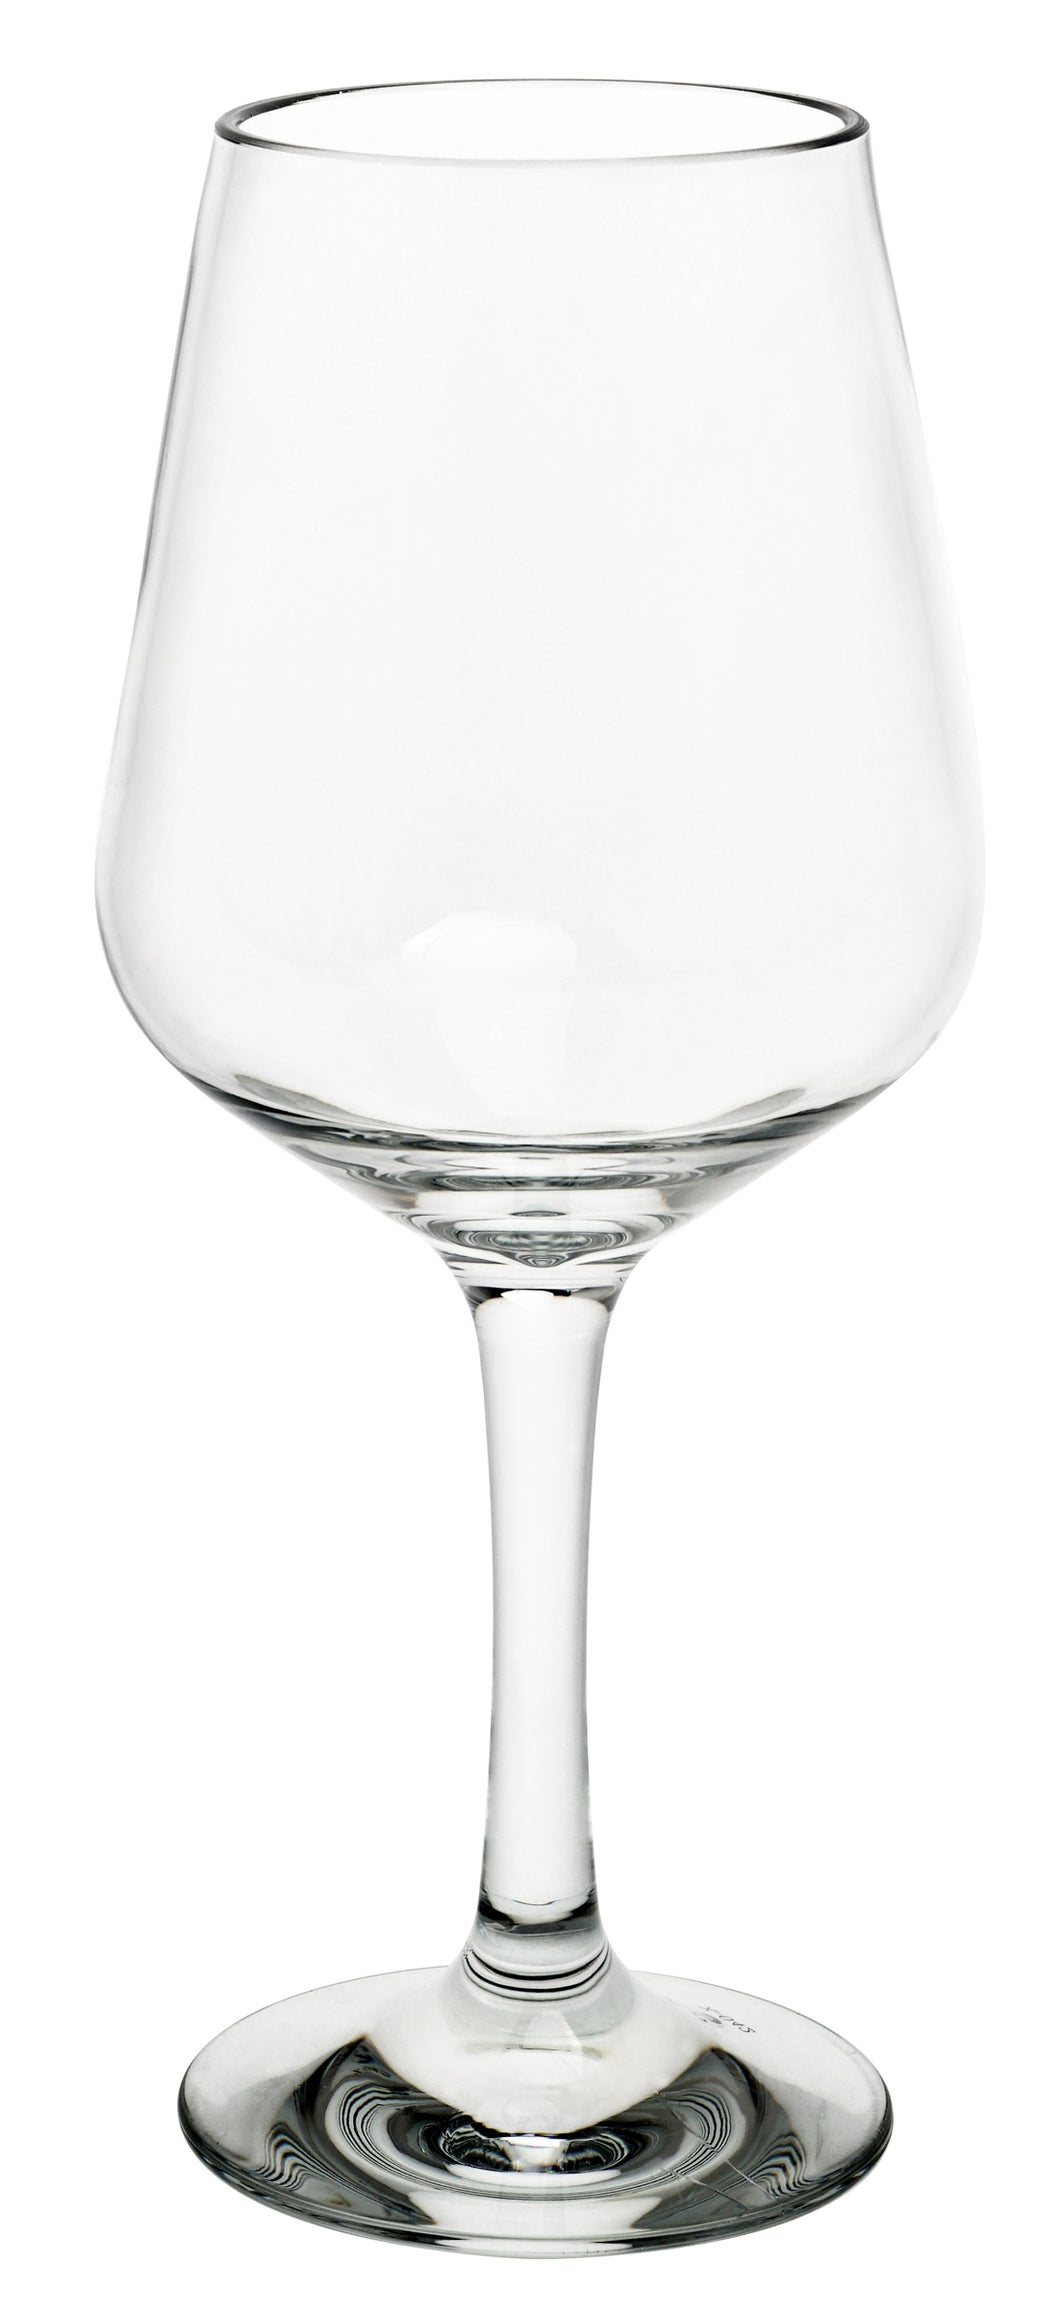 Unbreakable Wine Glass 540 ml (6 pcs)